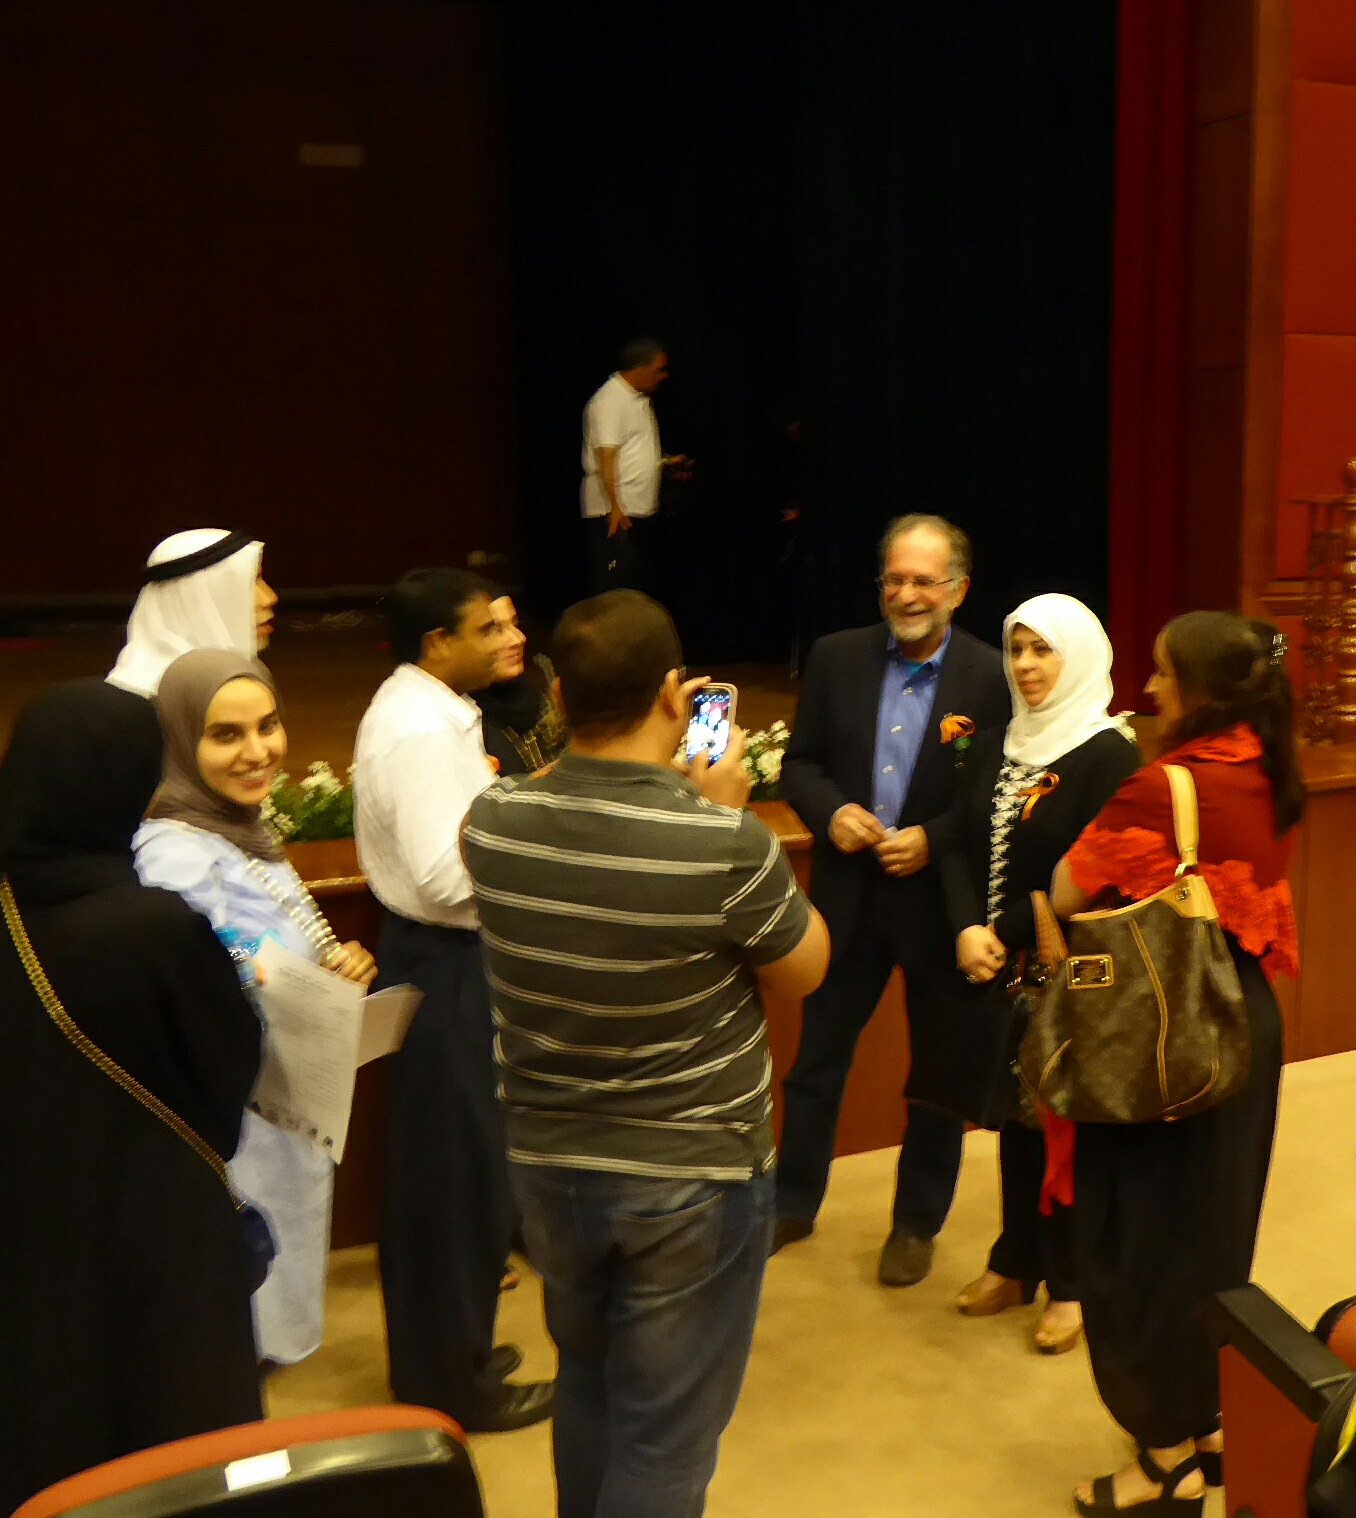 2016, answering questions after Autism in the Family lecture in Kuwait.